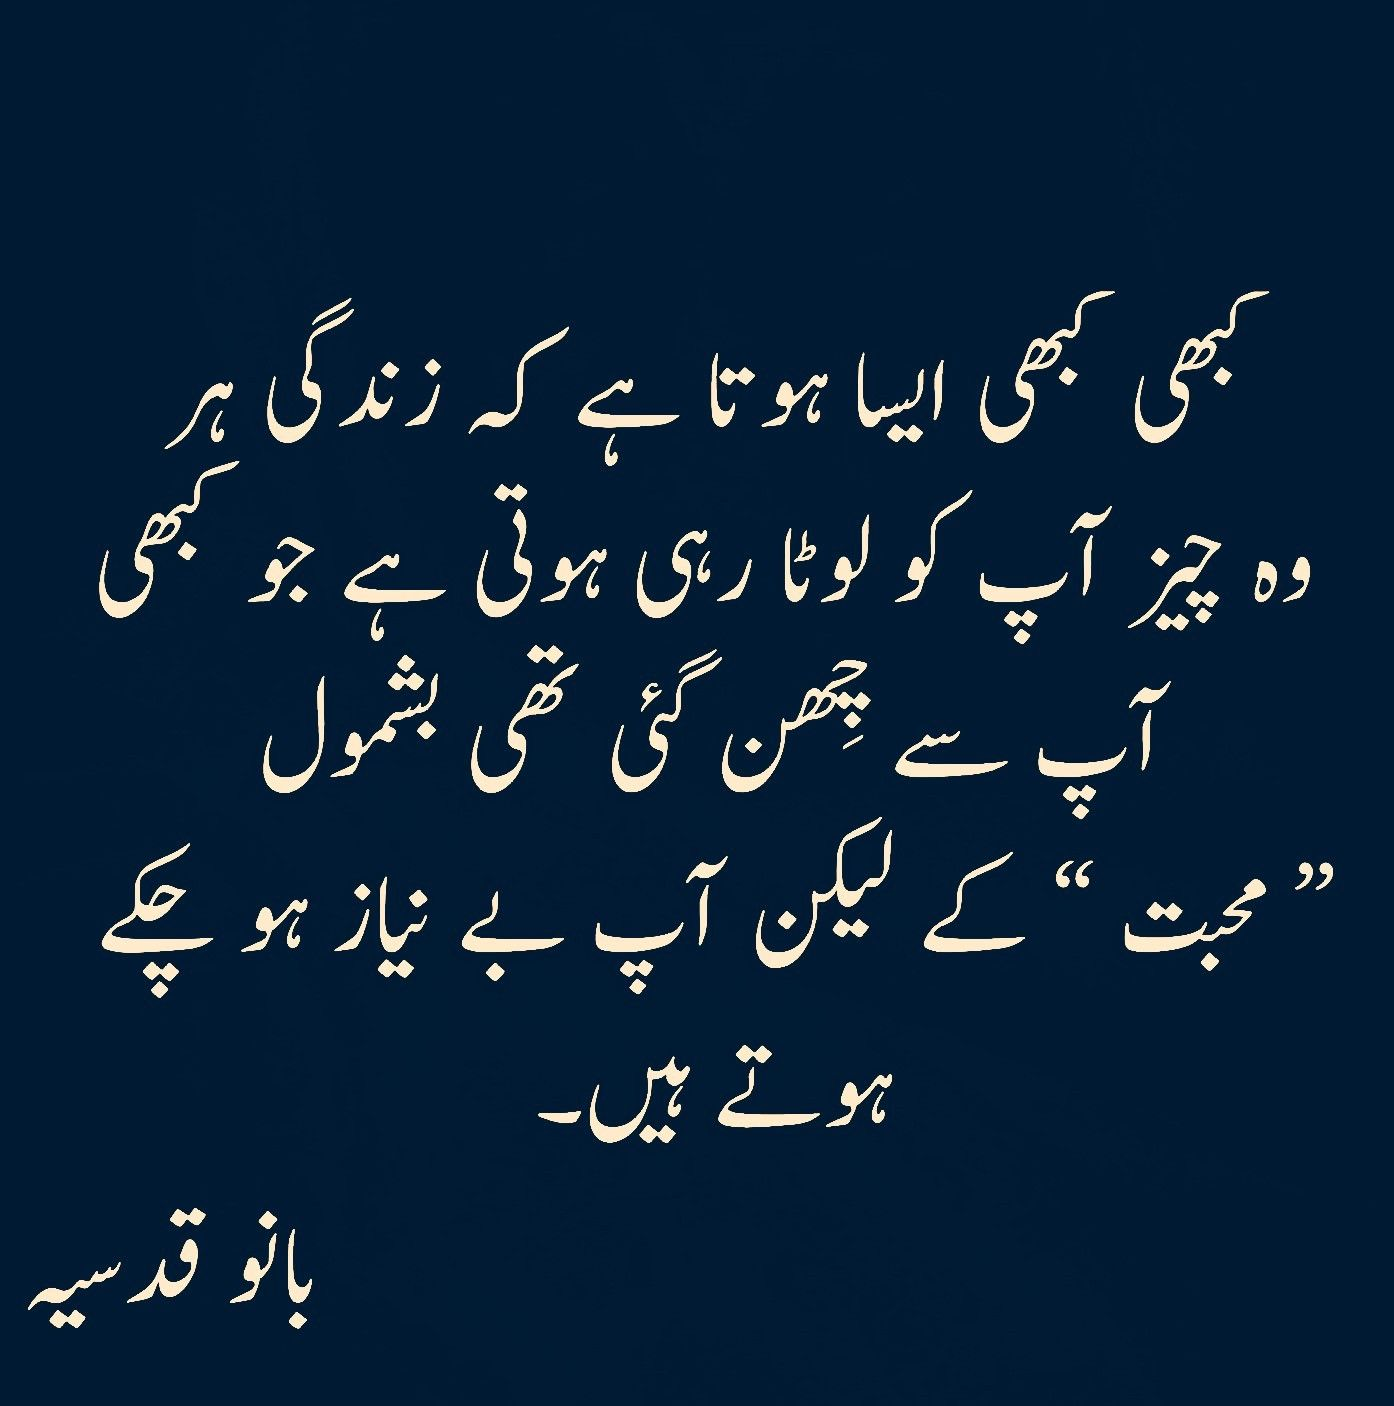 Bano Qudsia Dialogue Bano Qudsia Quotes Urdu Quotes Poetry Quotes Punjabi Quotes